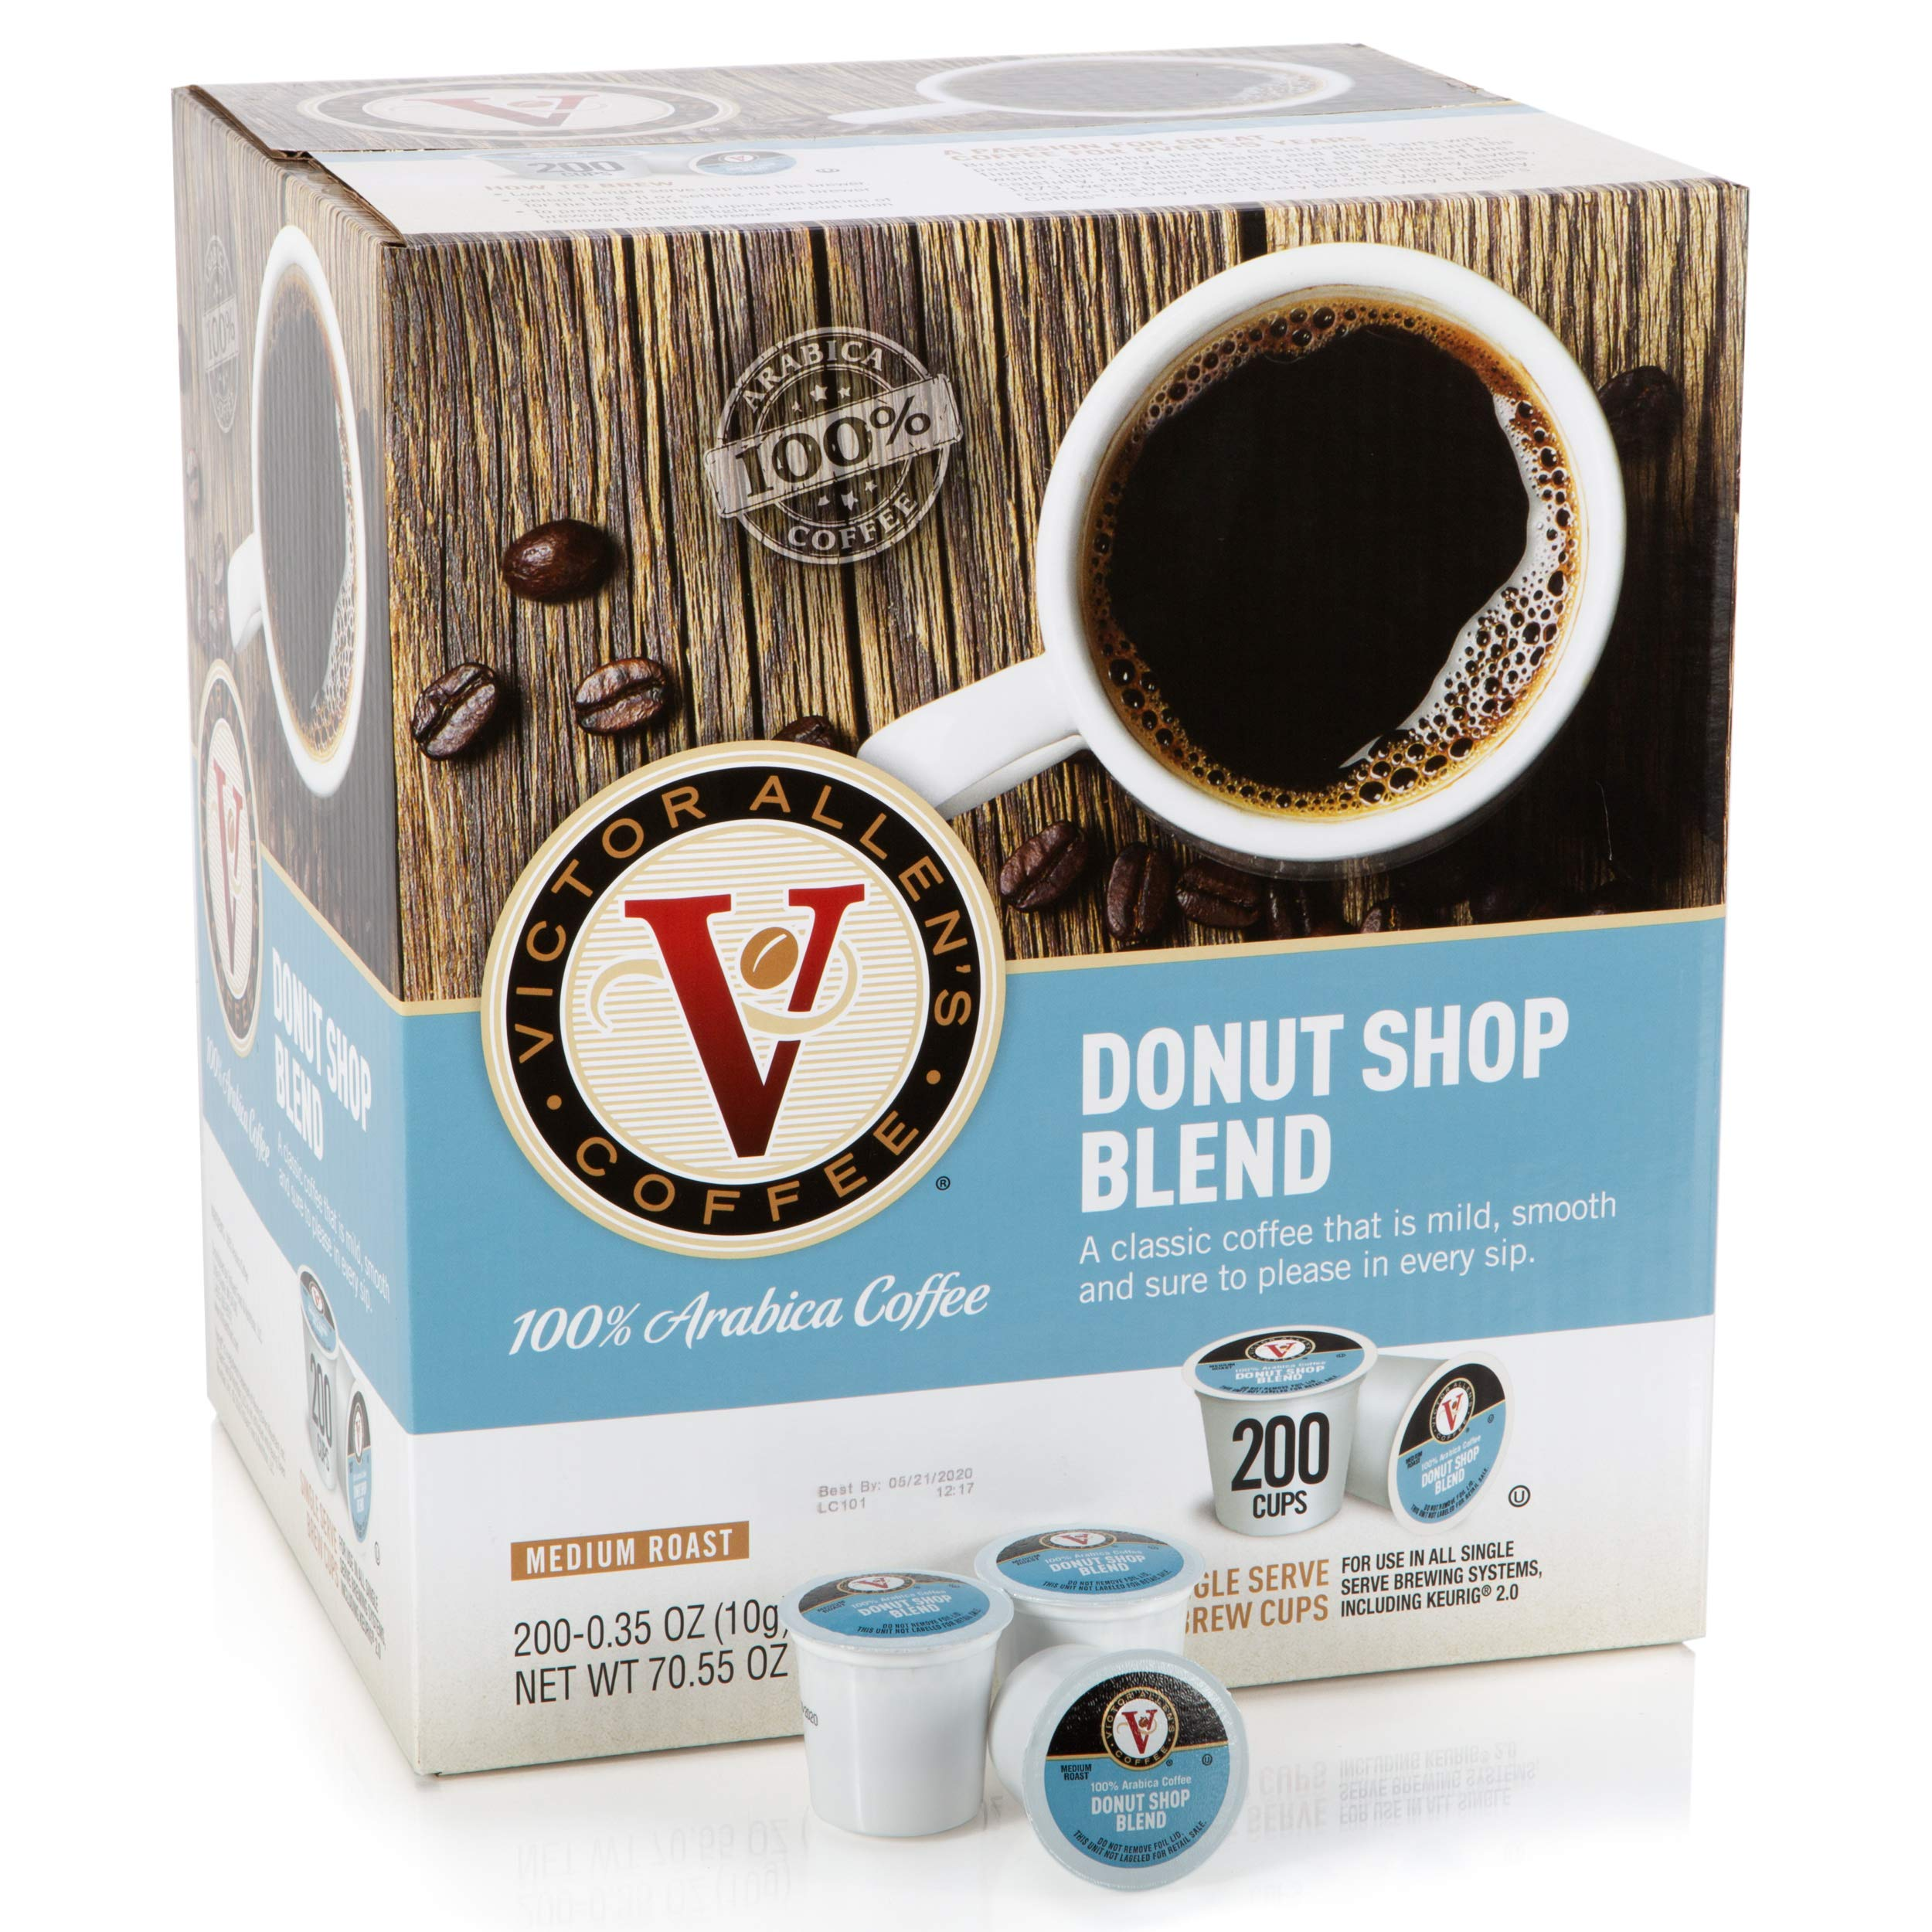 Victor Allen Coffee, Donut Shop Single Serve K-cup, 200 Count (Compatible with 2.0 Keurig Brewers) by Victor Allen (Image #1)